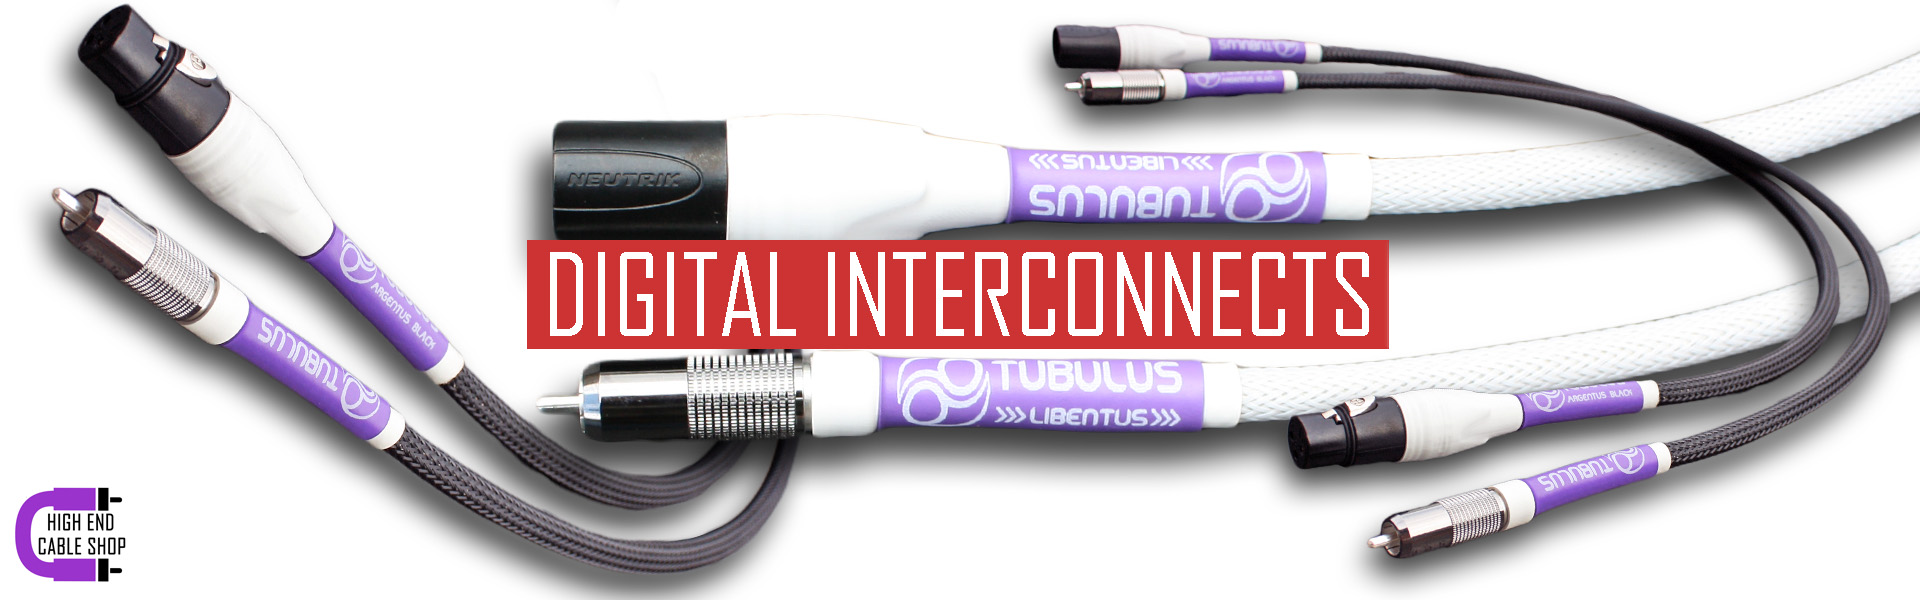 High end cable shop slide digital interconnects